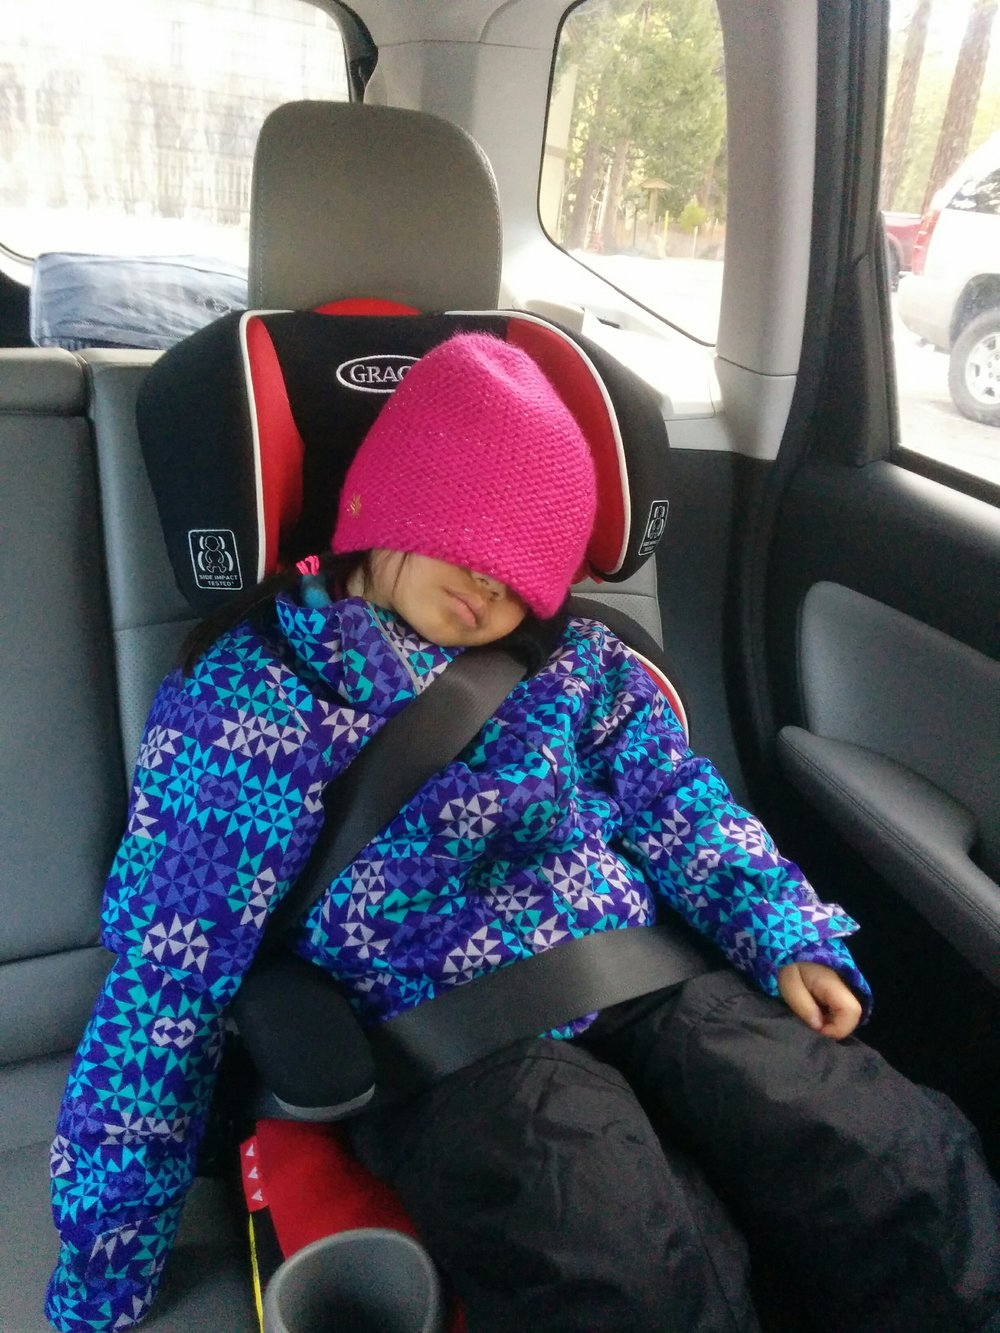 The ride home for Kelly usually means a nap in the car!